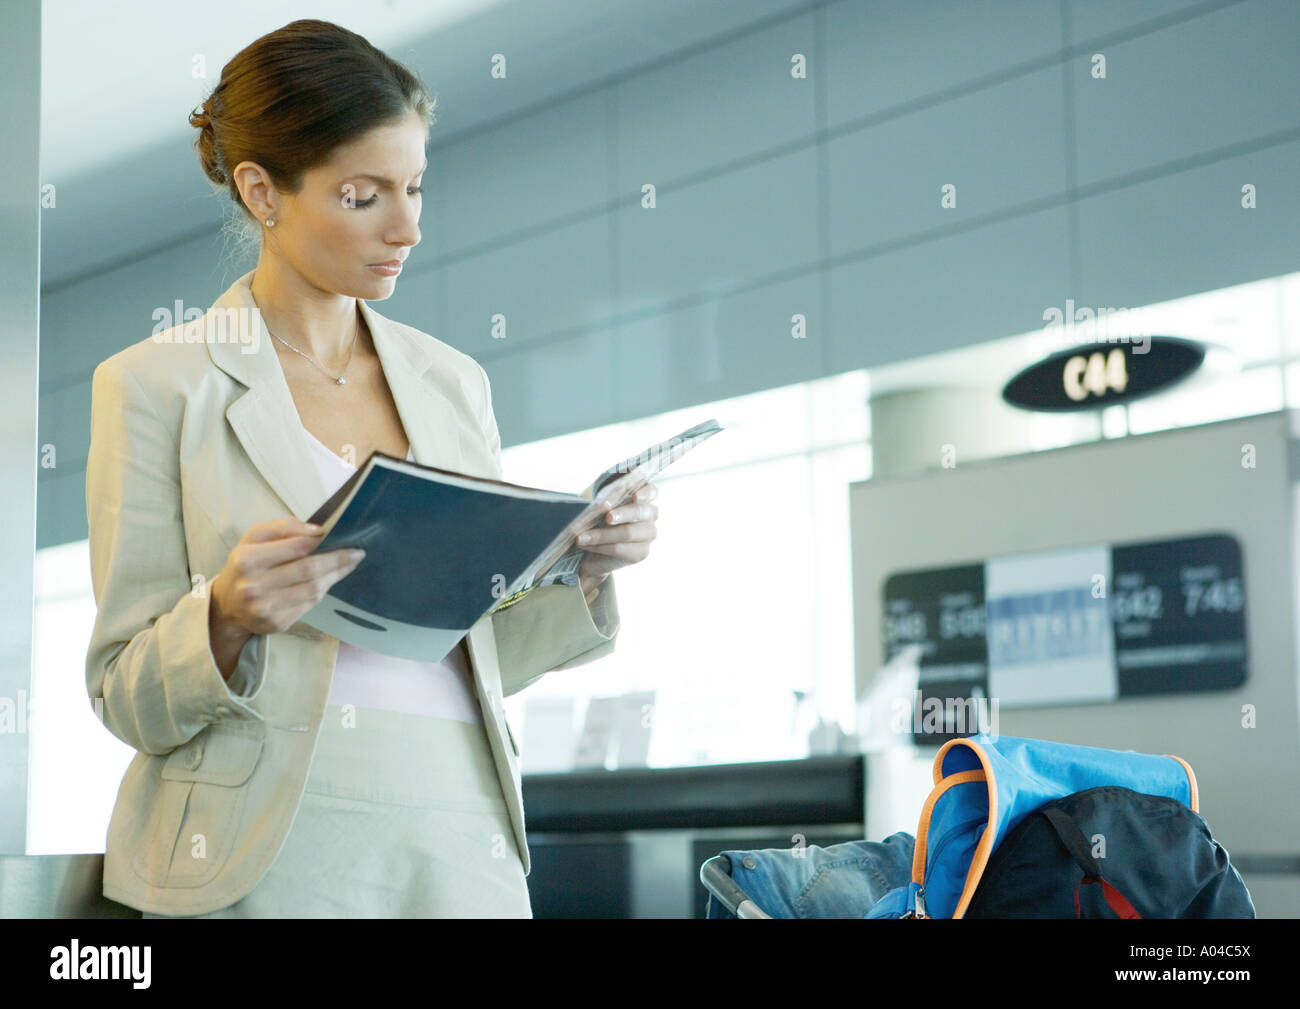 Woman standing in airport near departure gate - Stock Image